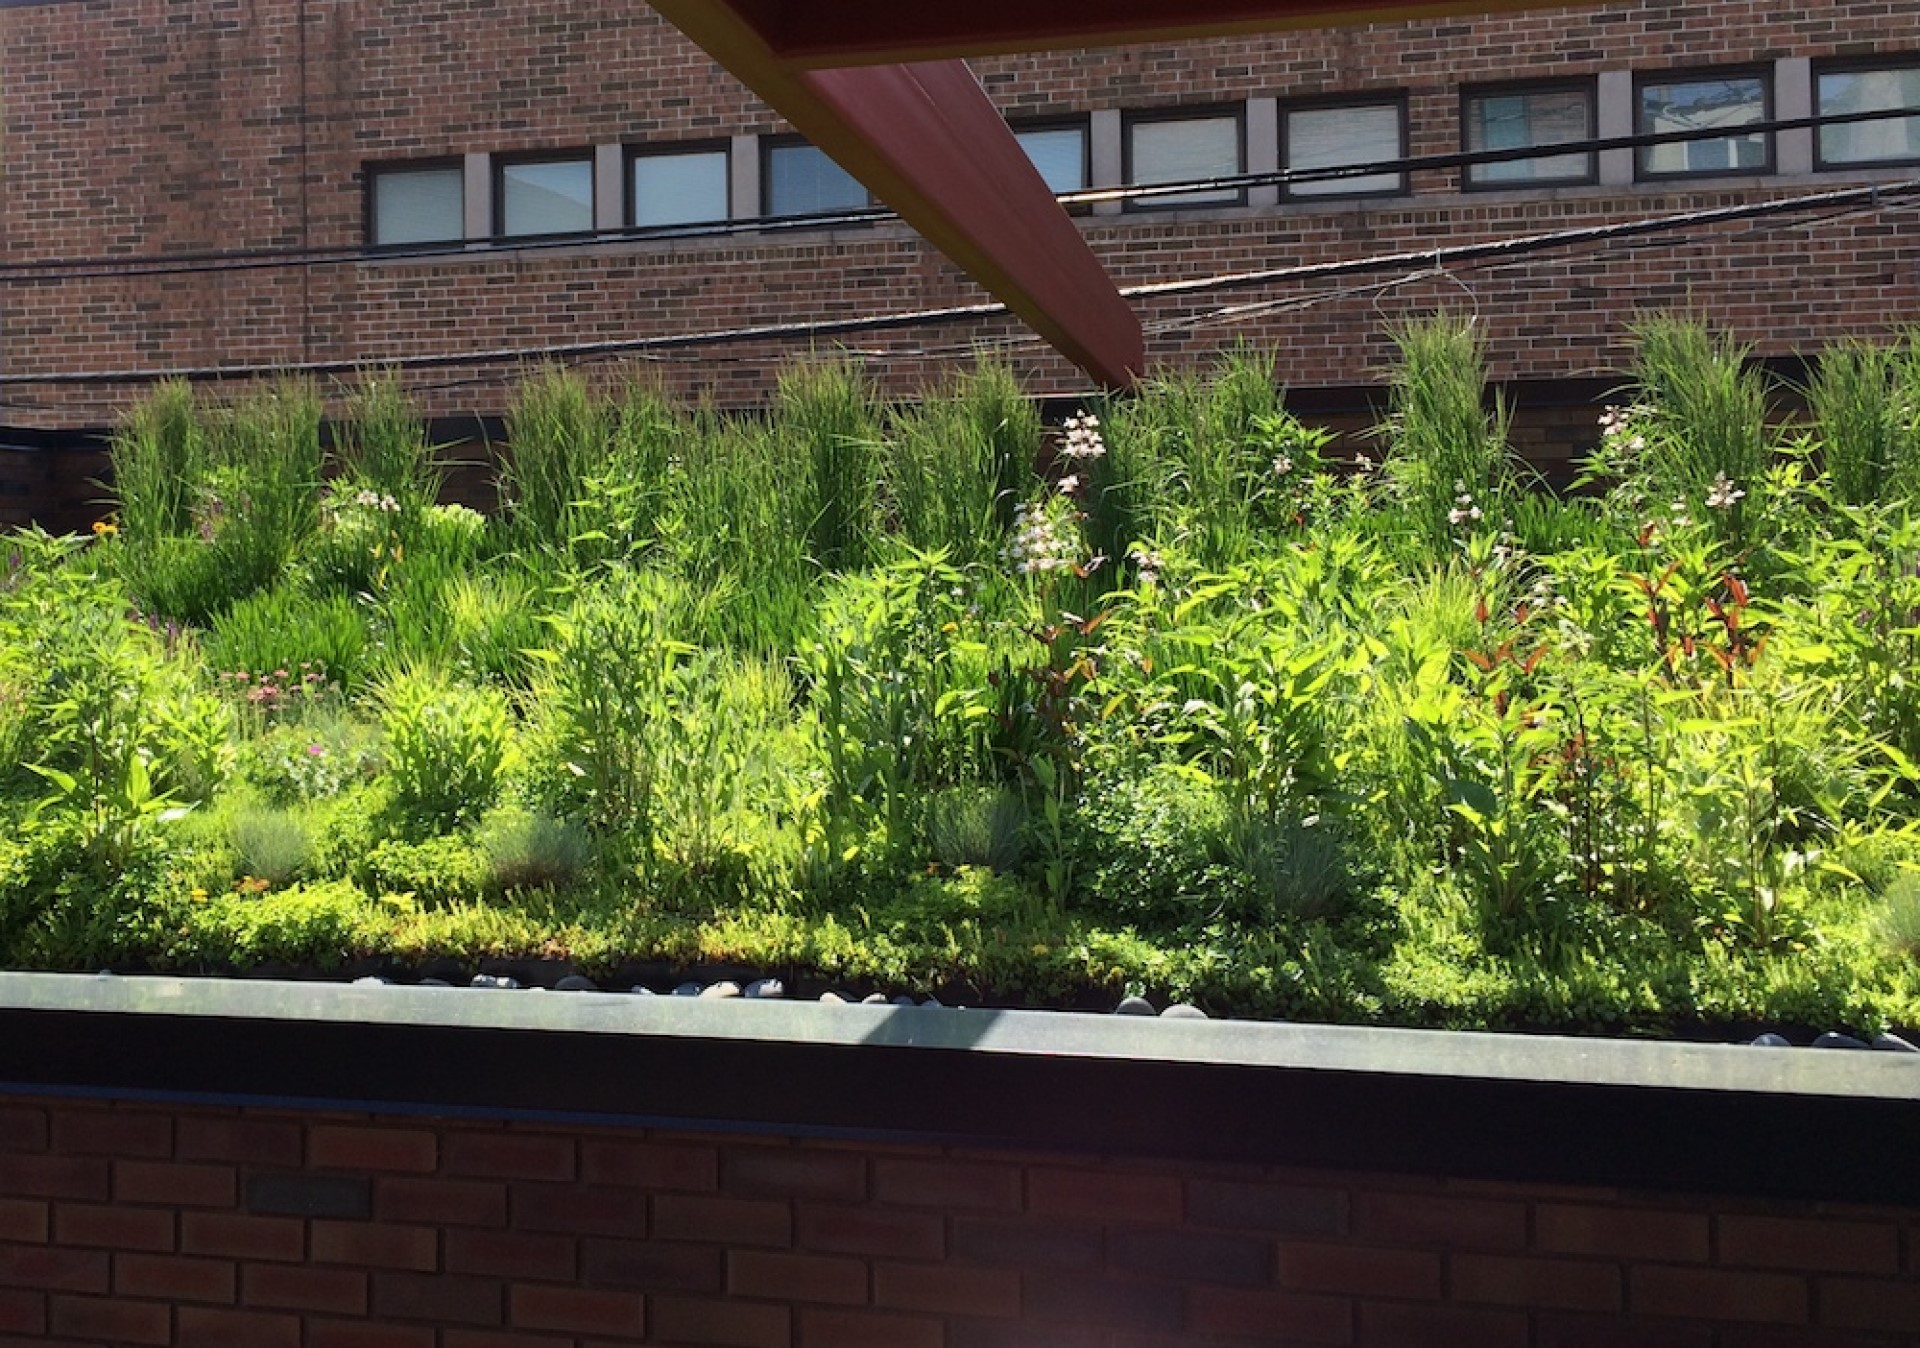 What Are the Layers of a Green Roof?